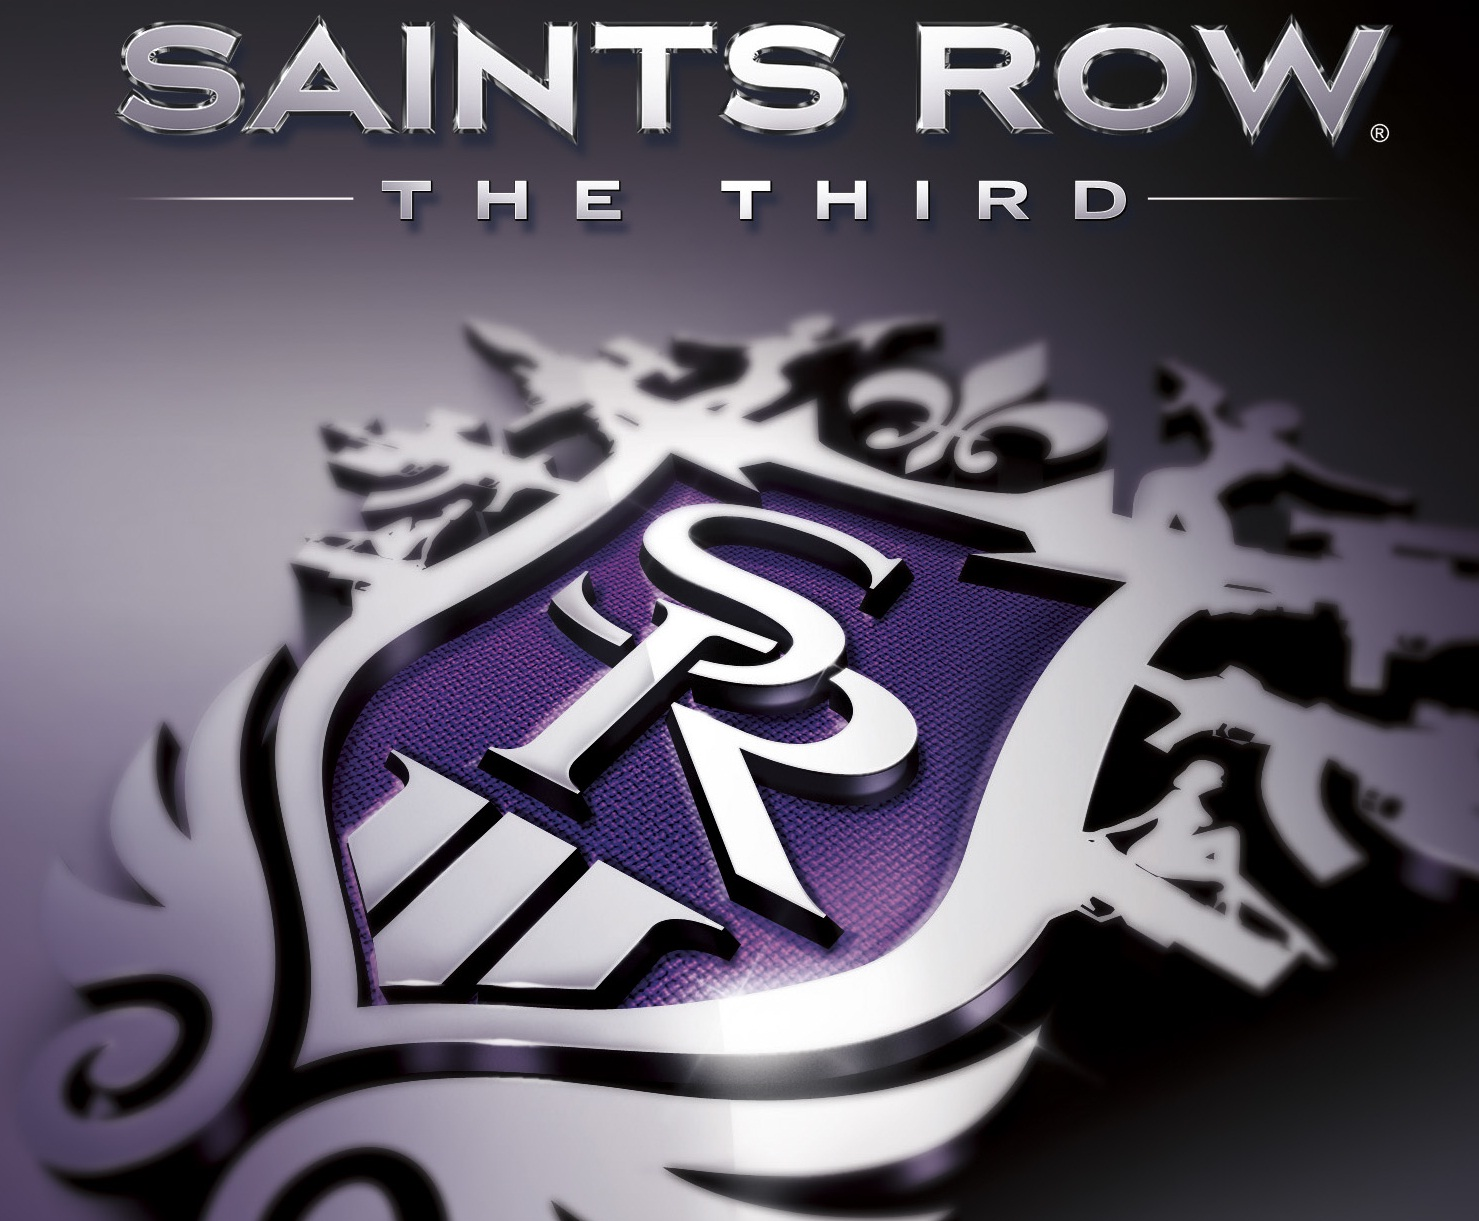 http://4.bp.blogspot.com/-_7Ue7756T-4/Th4Cm1ck7hI/AAAAAAAACJg/uk5gz4GmctI/s1600/saint_row-the_third_wallpaper_3.jpg